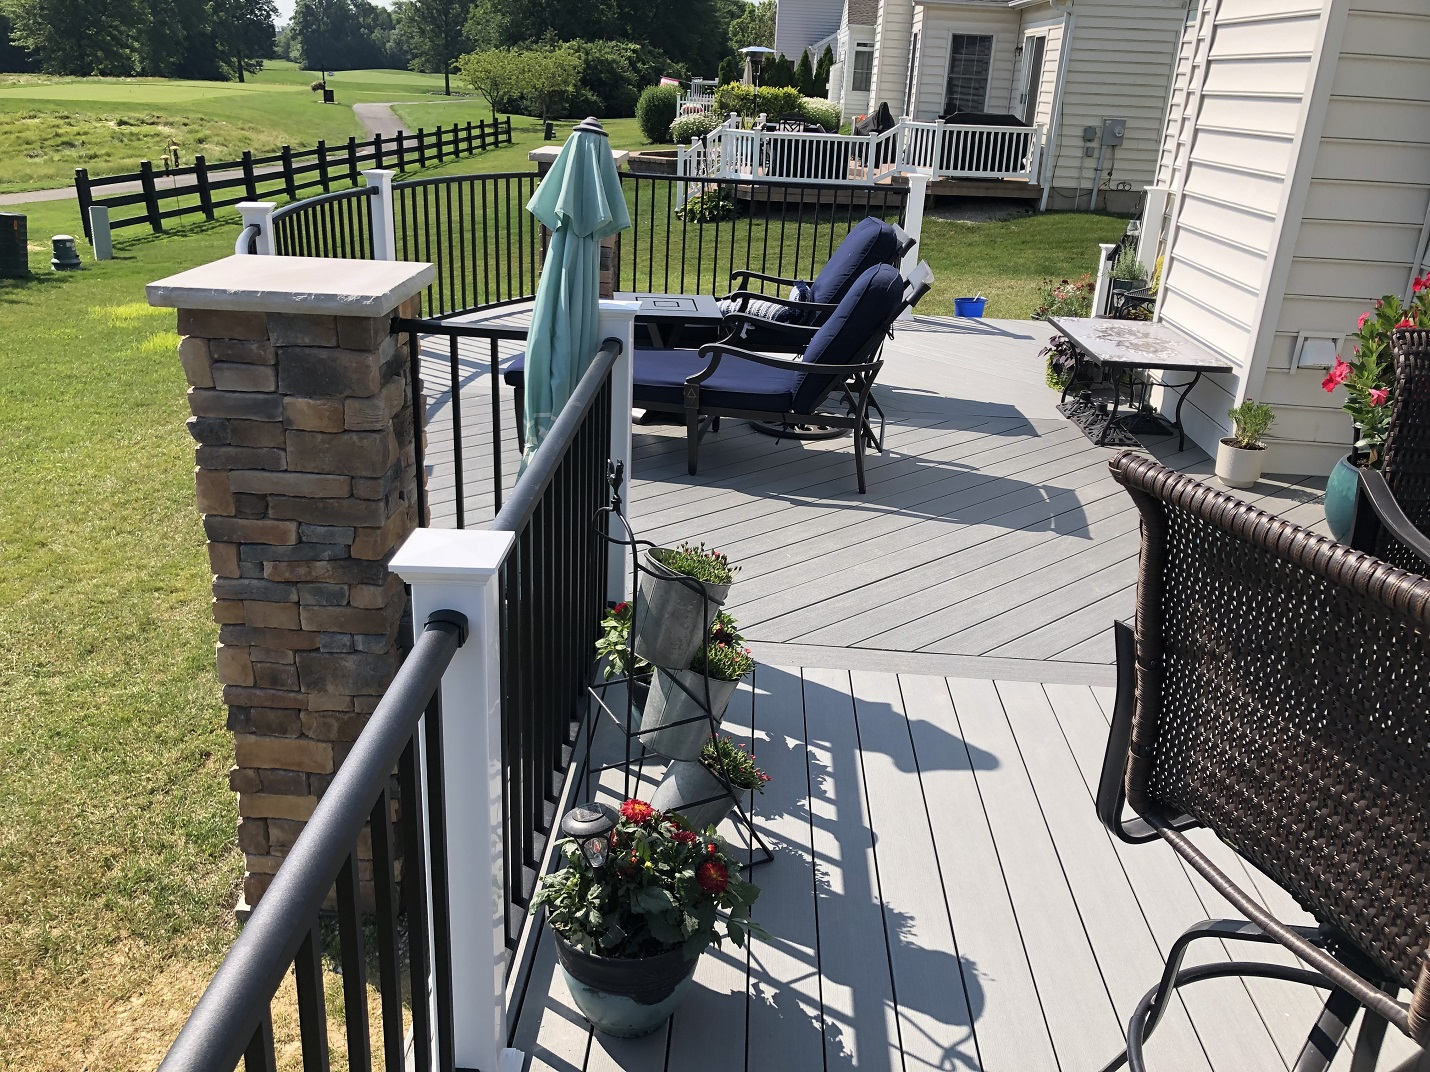 The-new-deck-provides-a-front-row-seat-to-the-golf-course-views